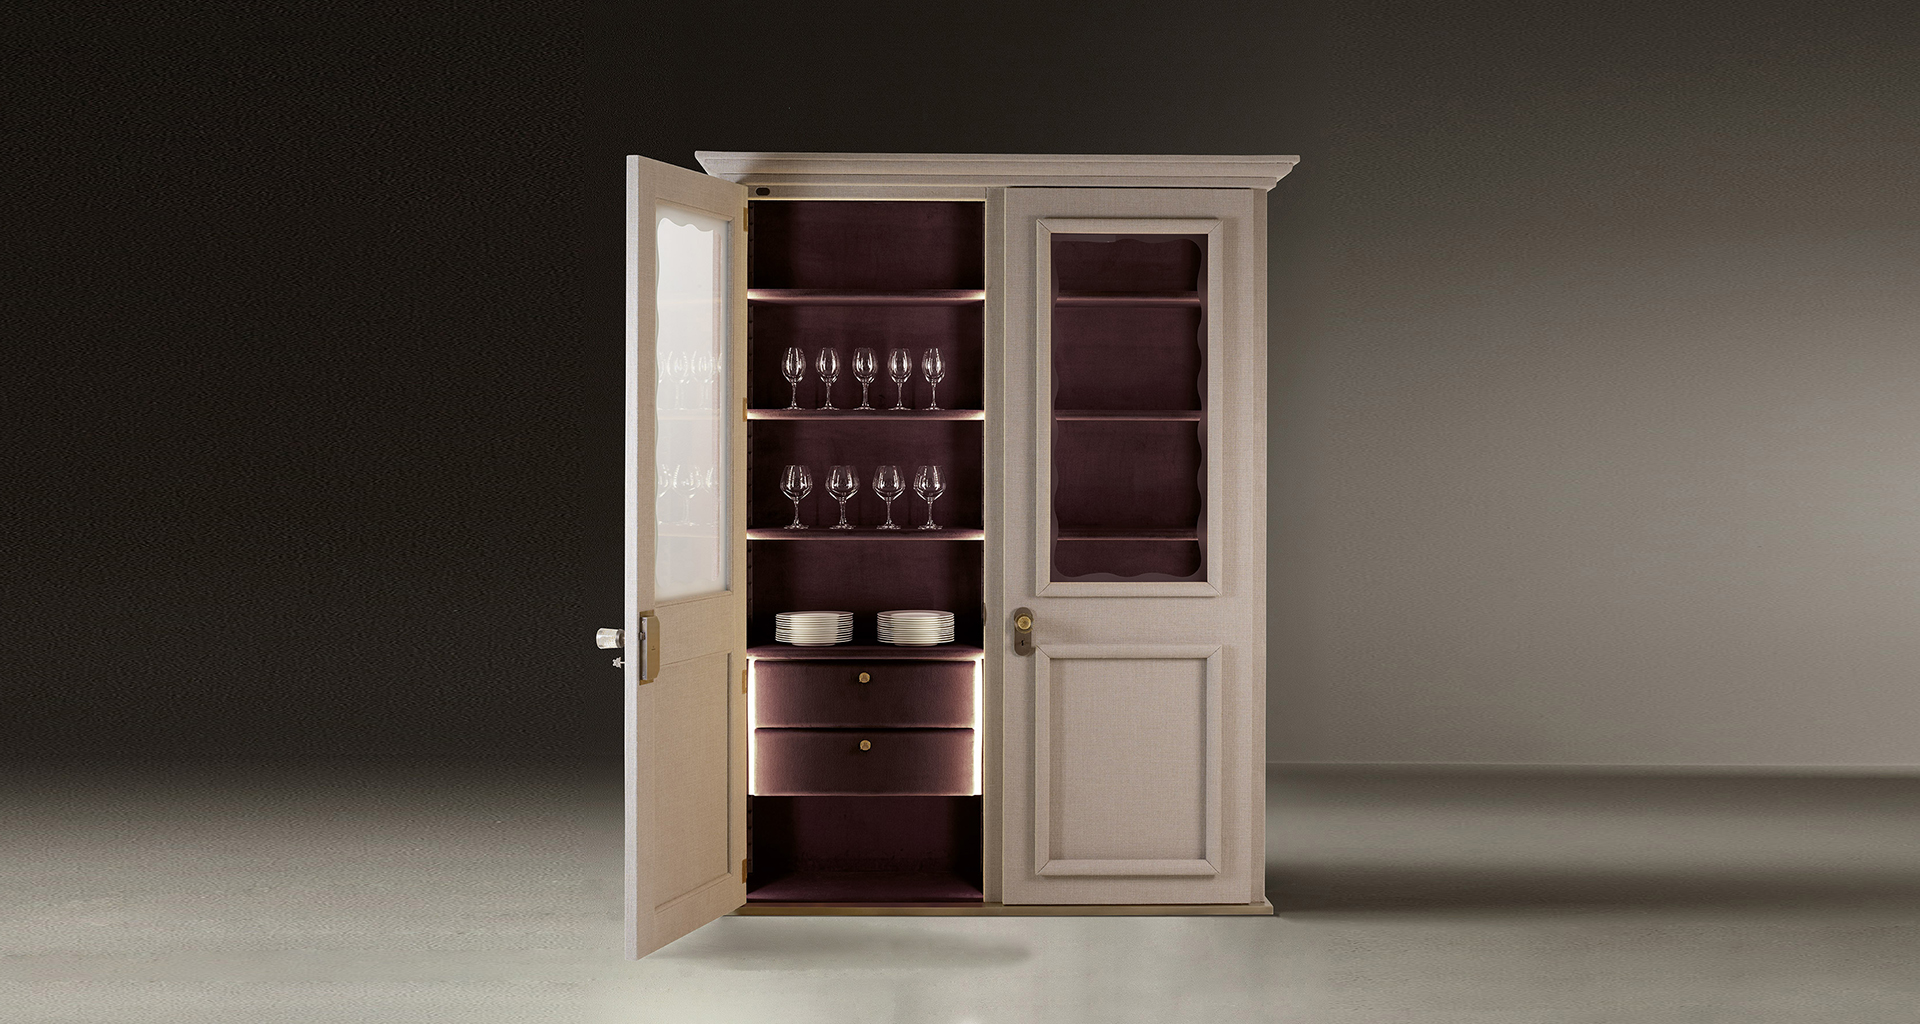 Inside of George, a wooden modular wardrobe with two, three or four doors covered in velvet or linen and details in bronze, from the Promemoria's catalogue | Promemoria